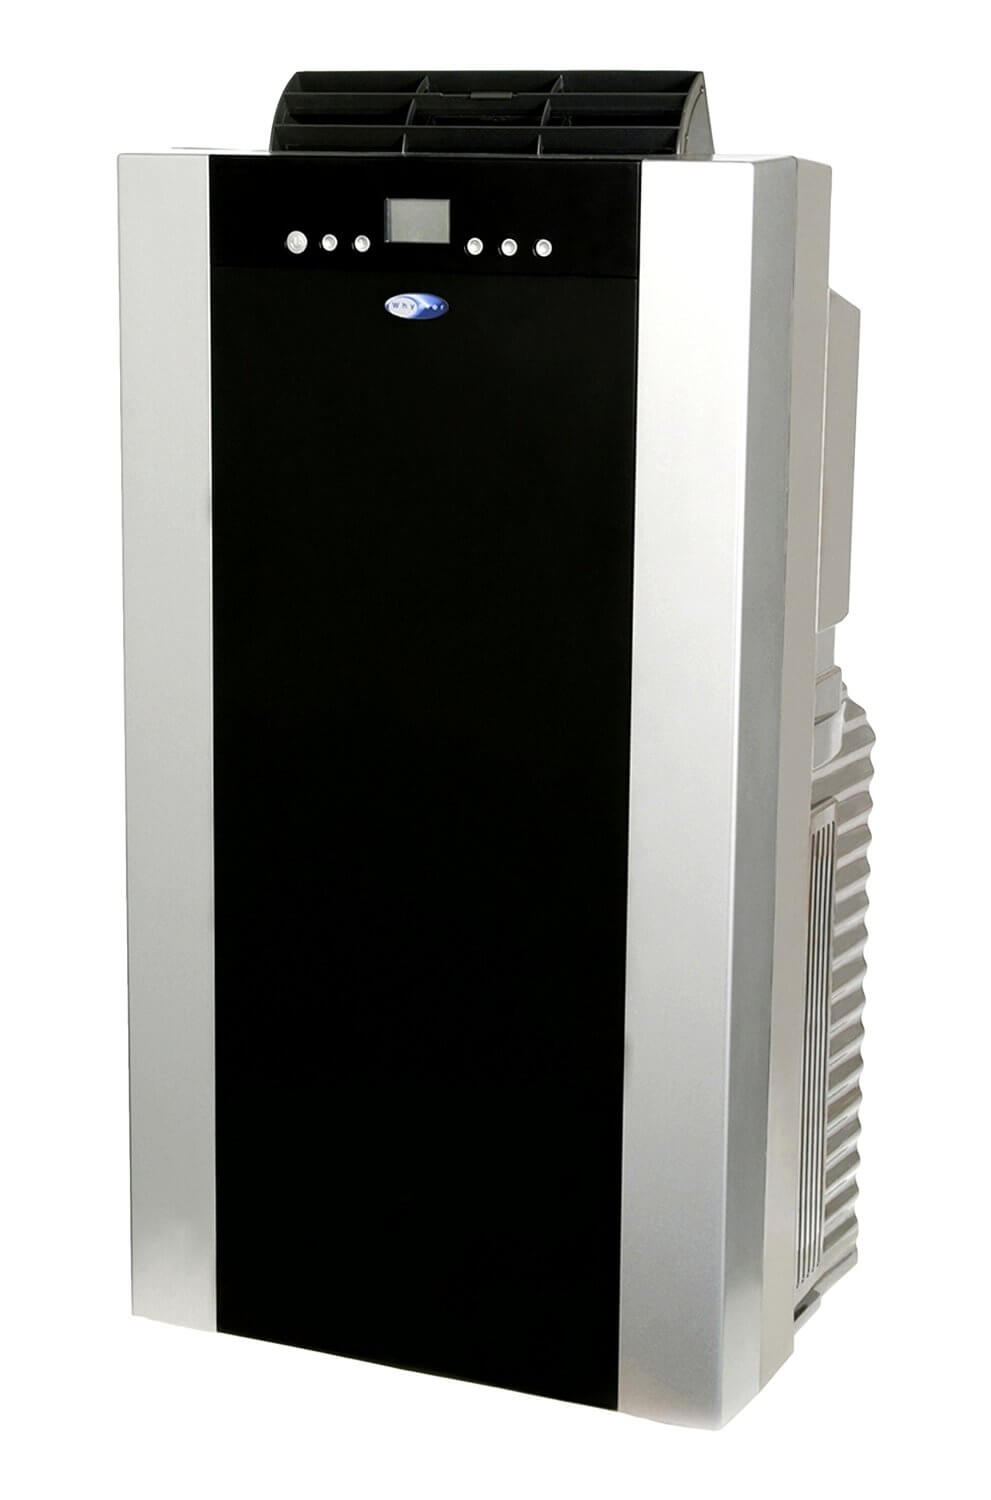 Image of Whynter ARC-14S